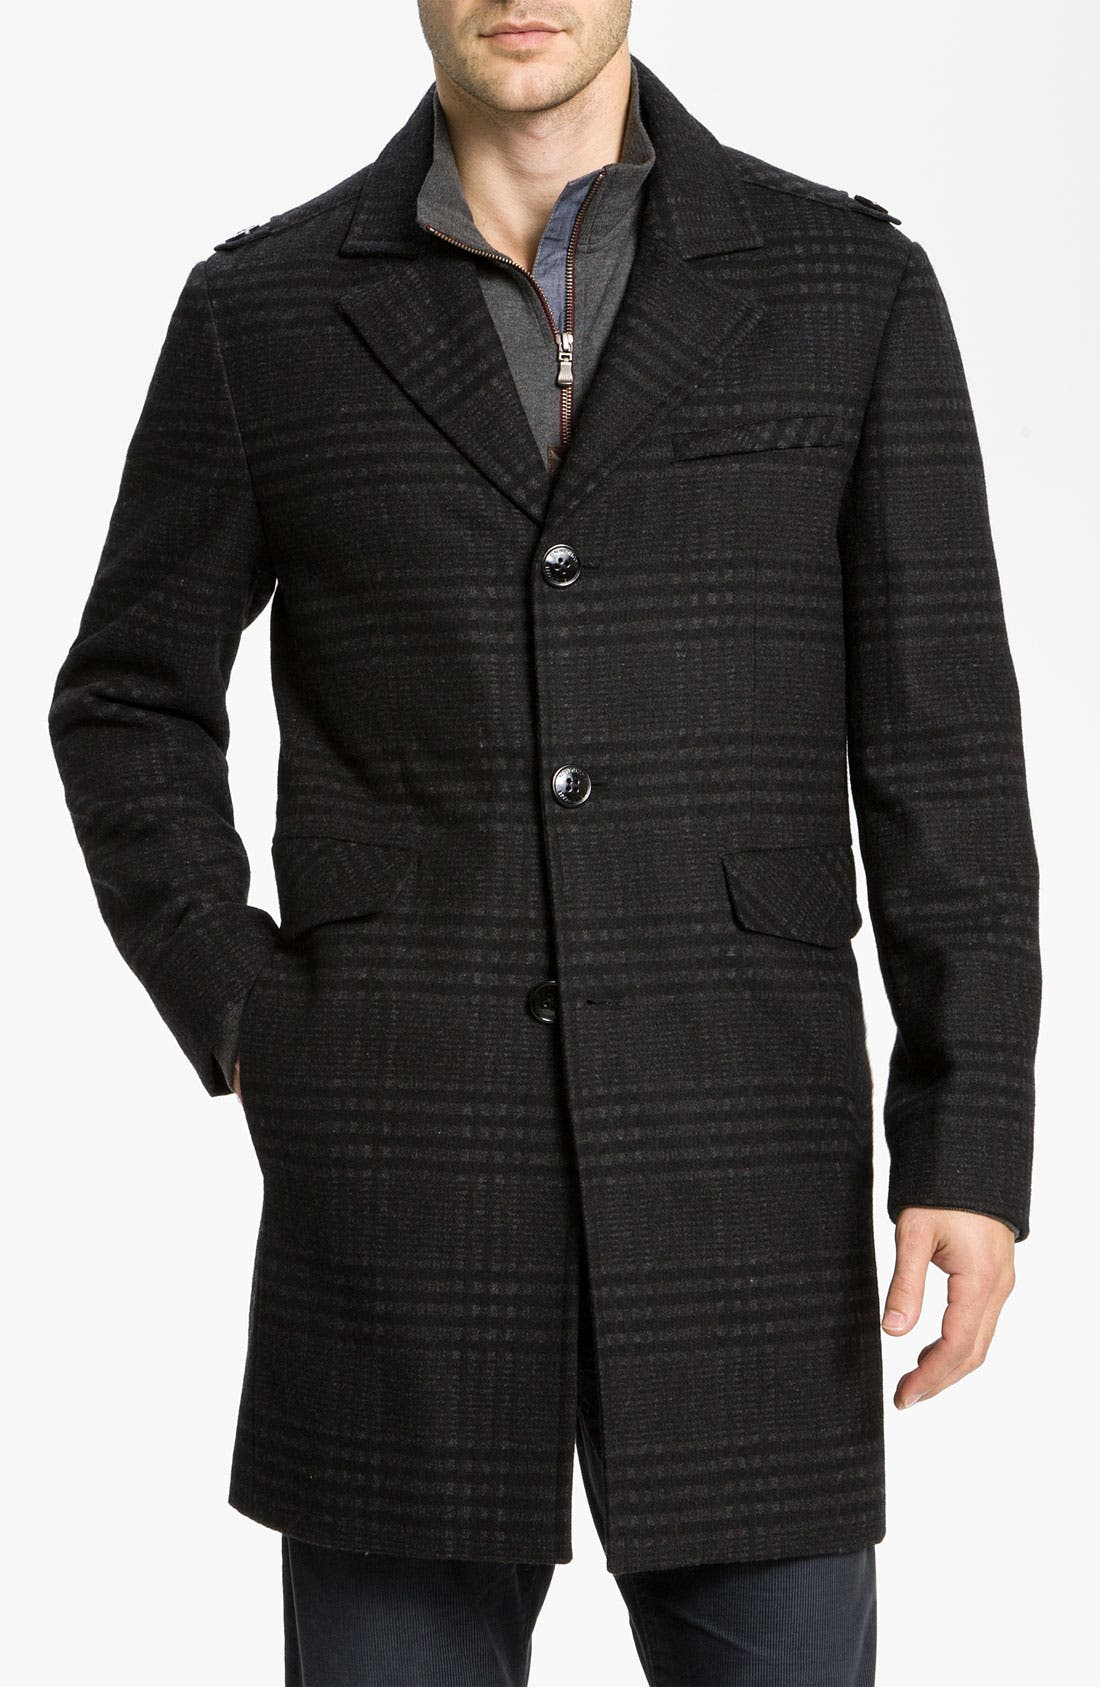 Alternate Image 1 Selected - Kenneth Cole New York Wool Blend Overcoat